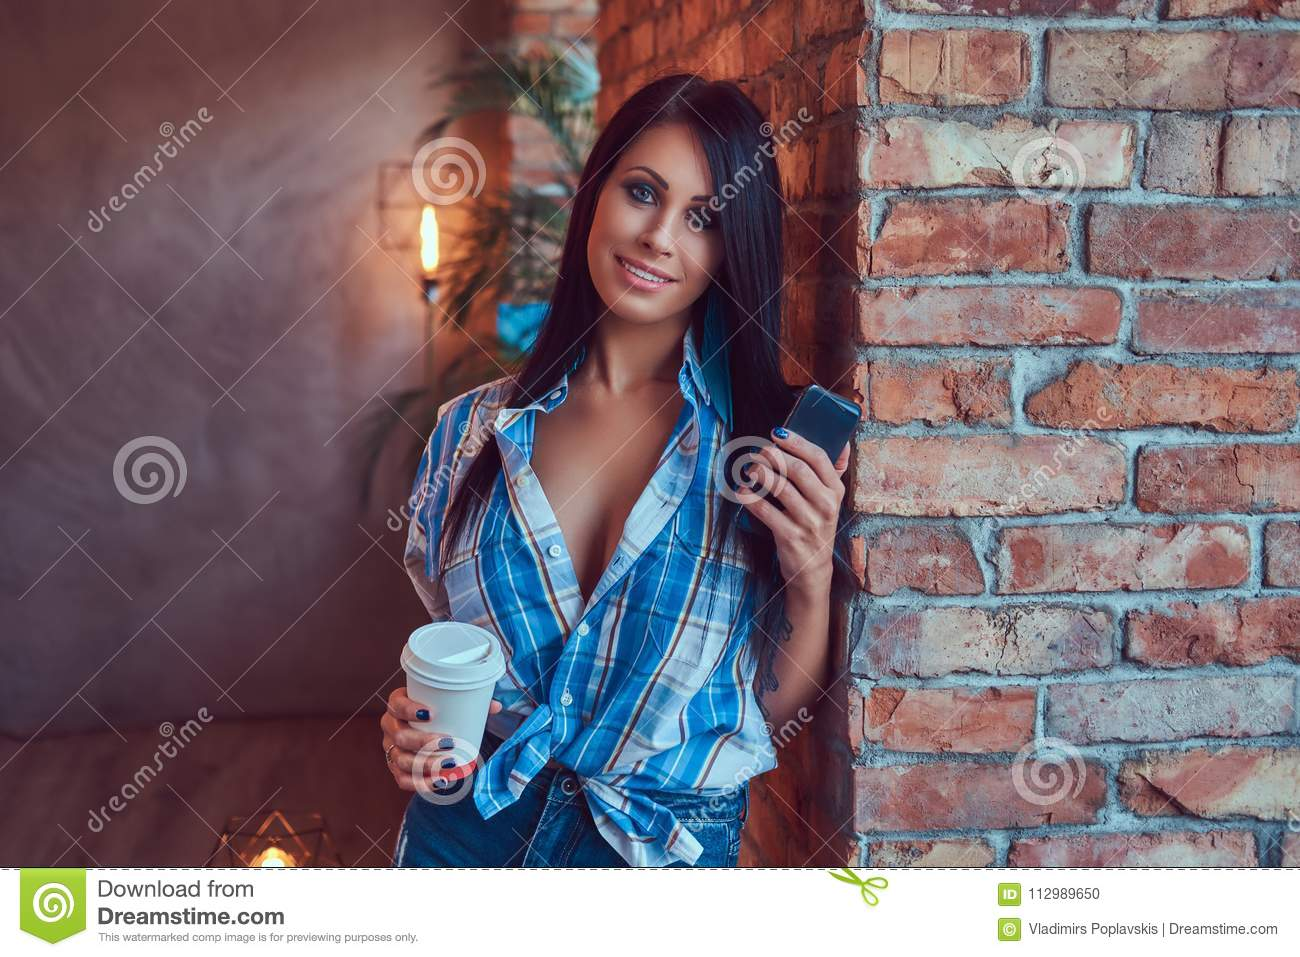 A happy brunette in a flannel shirt and jeans holds a cup of coffee and the phone posing against a brick wall.